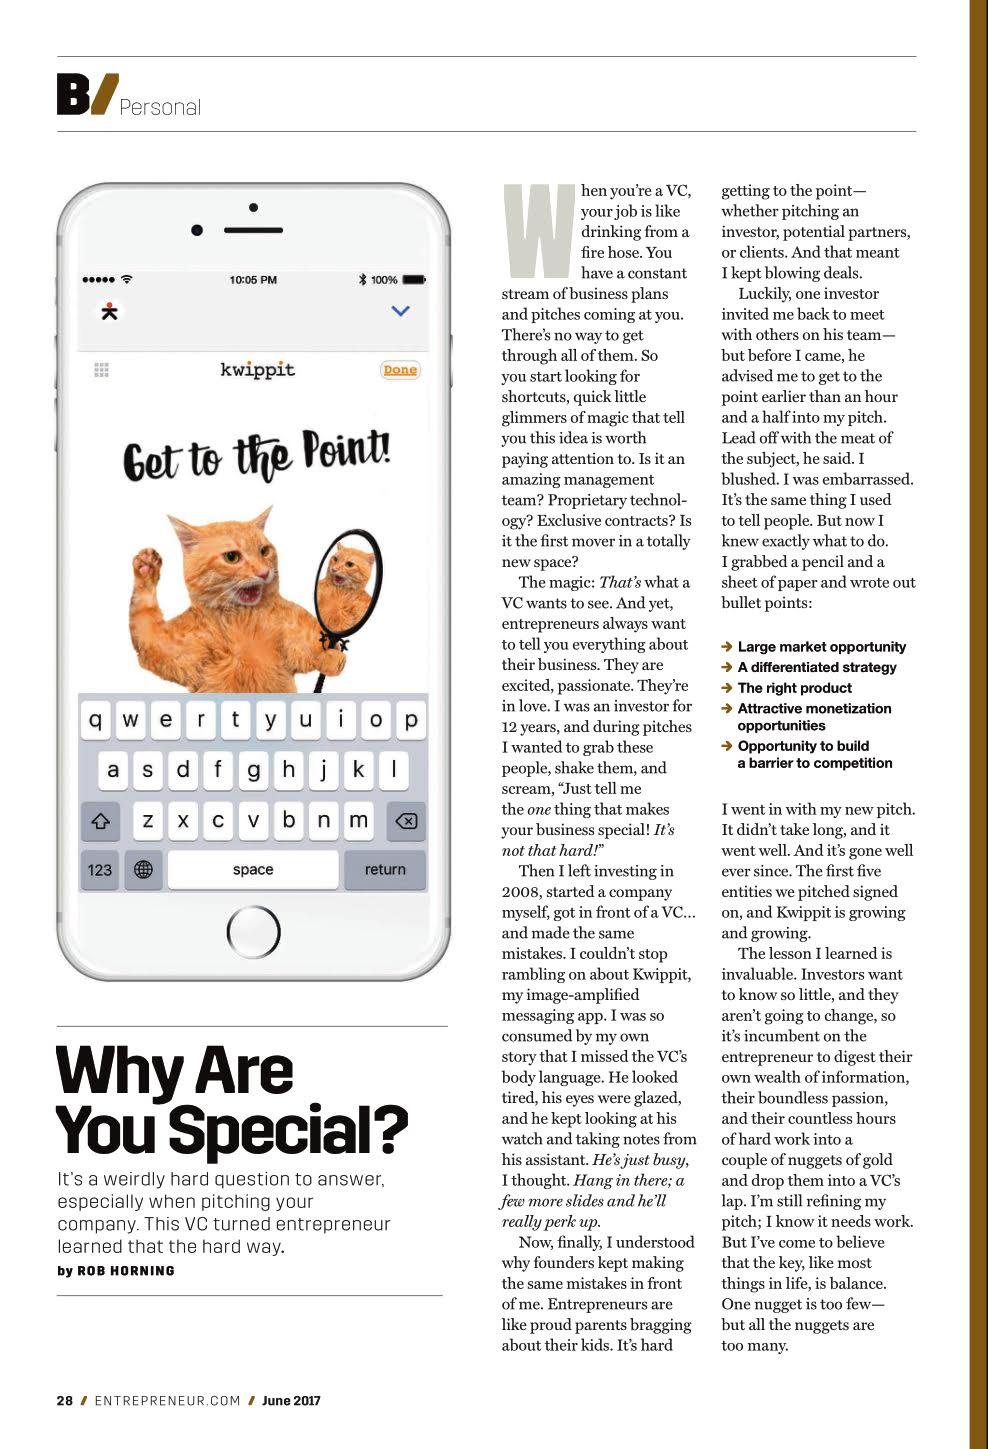 Kwippit Featured in Entrepreneur Magazine Article.jpg